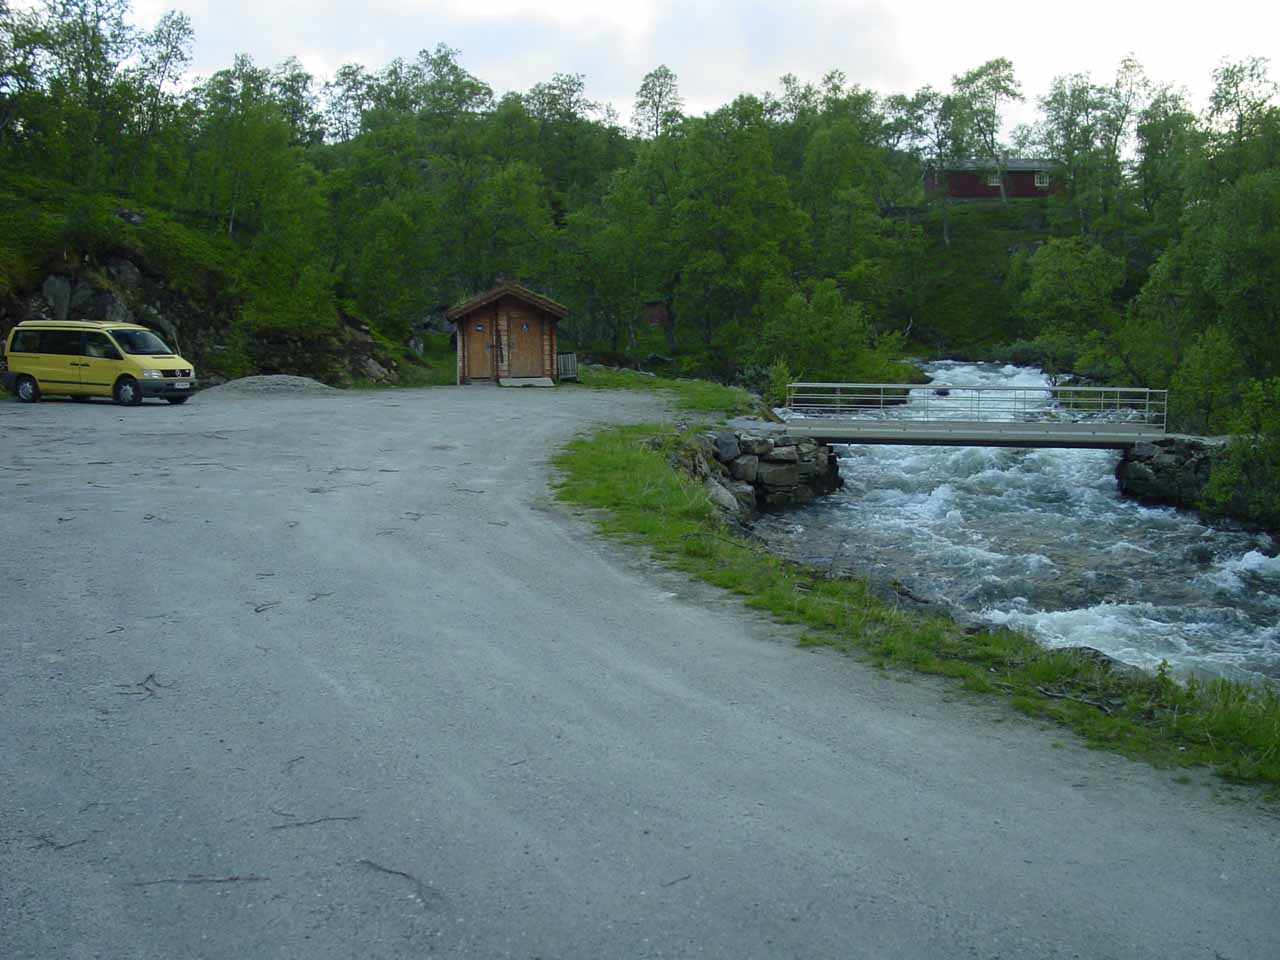 This was the car park we were supposed to have taken to start the Valursfossen hike